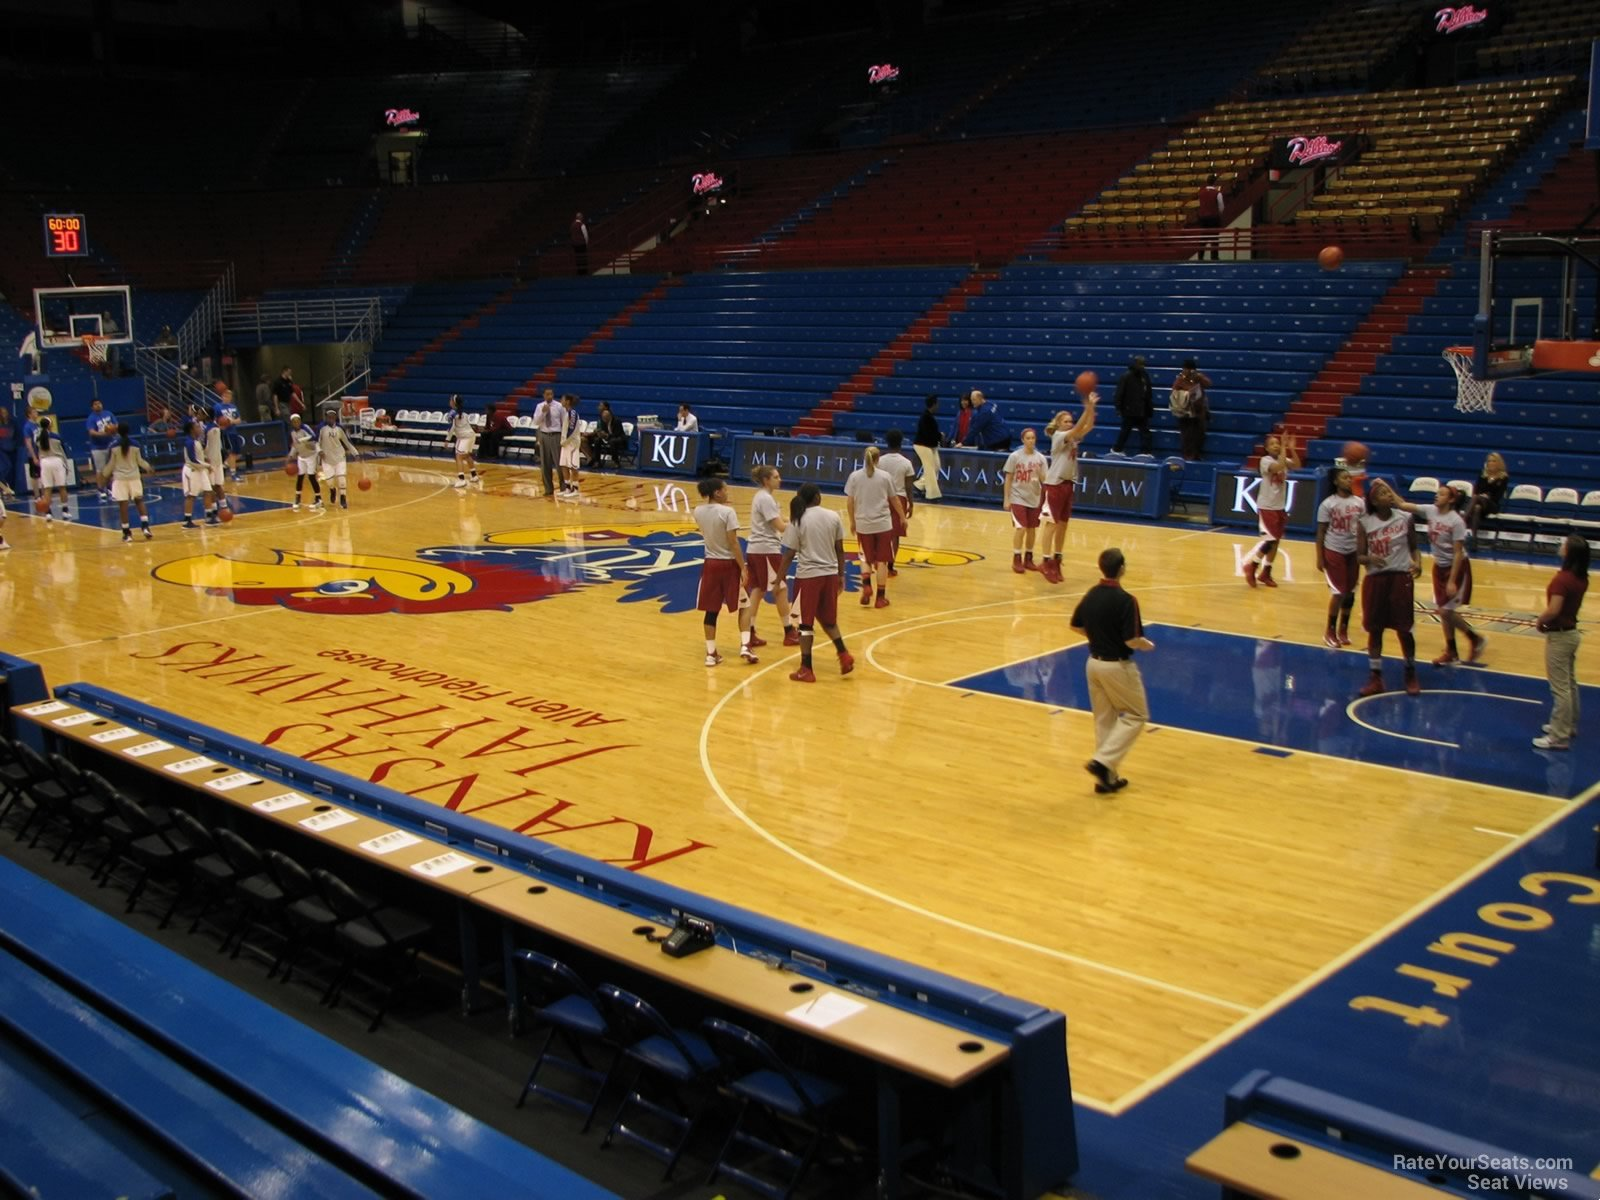 Seat View for Allen Fieldhouse Section E, Row 7